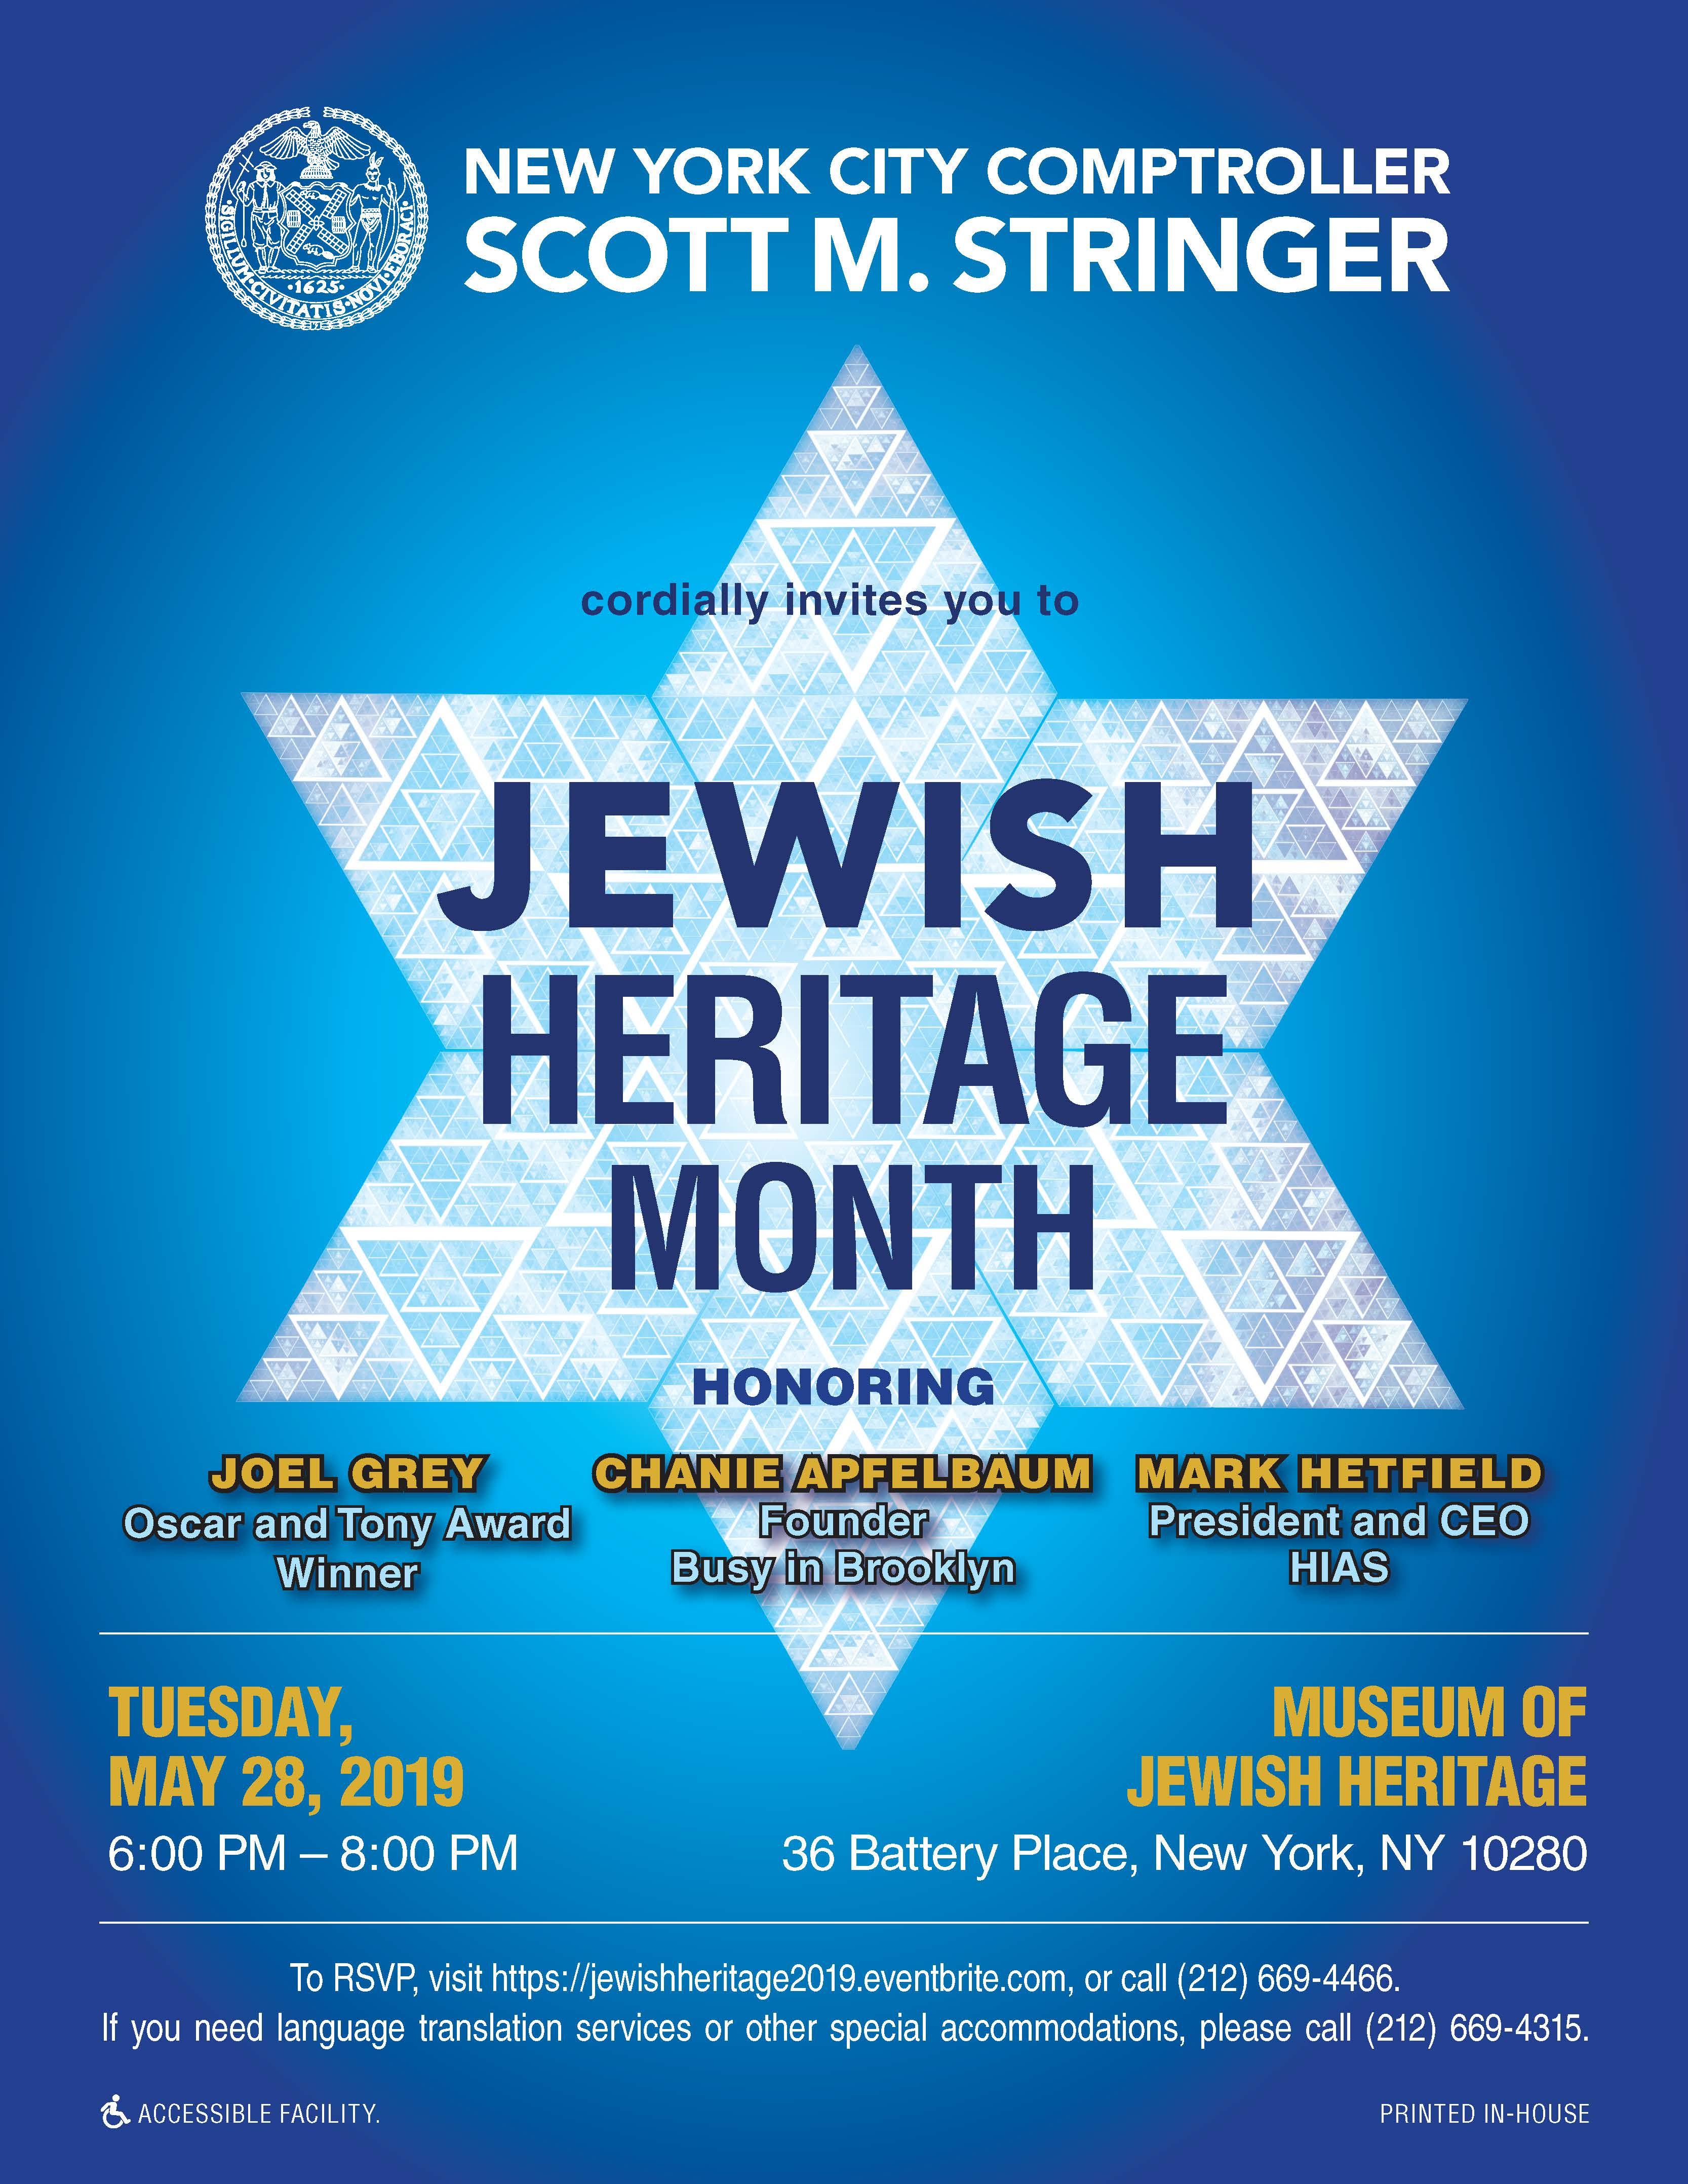 Jewish Heritage Month 2019 with Honorees